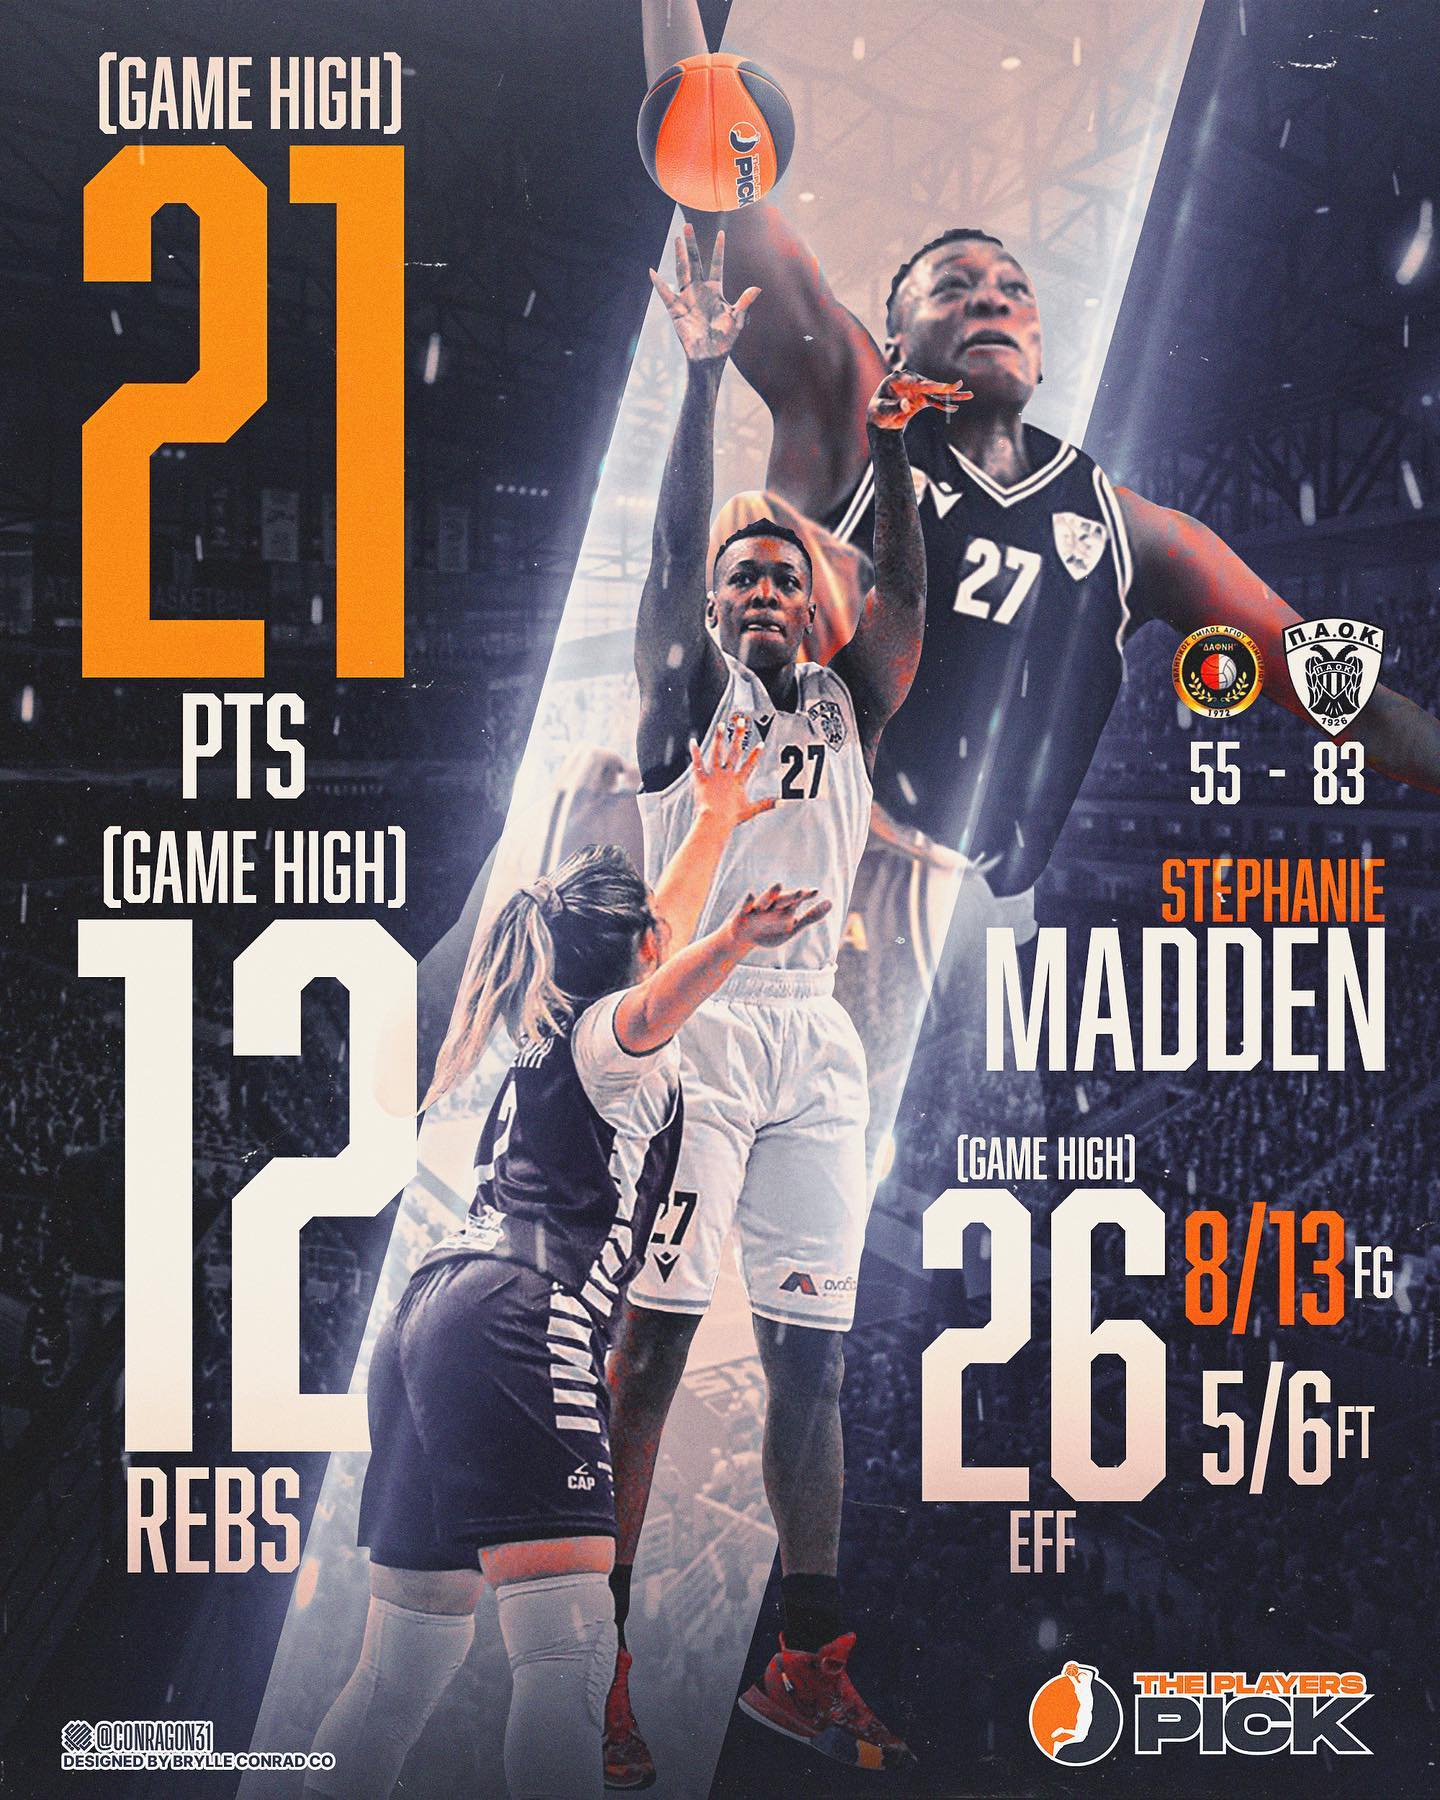 5th win in a row for PAOK behind another double double from Madden!